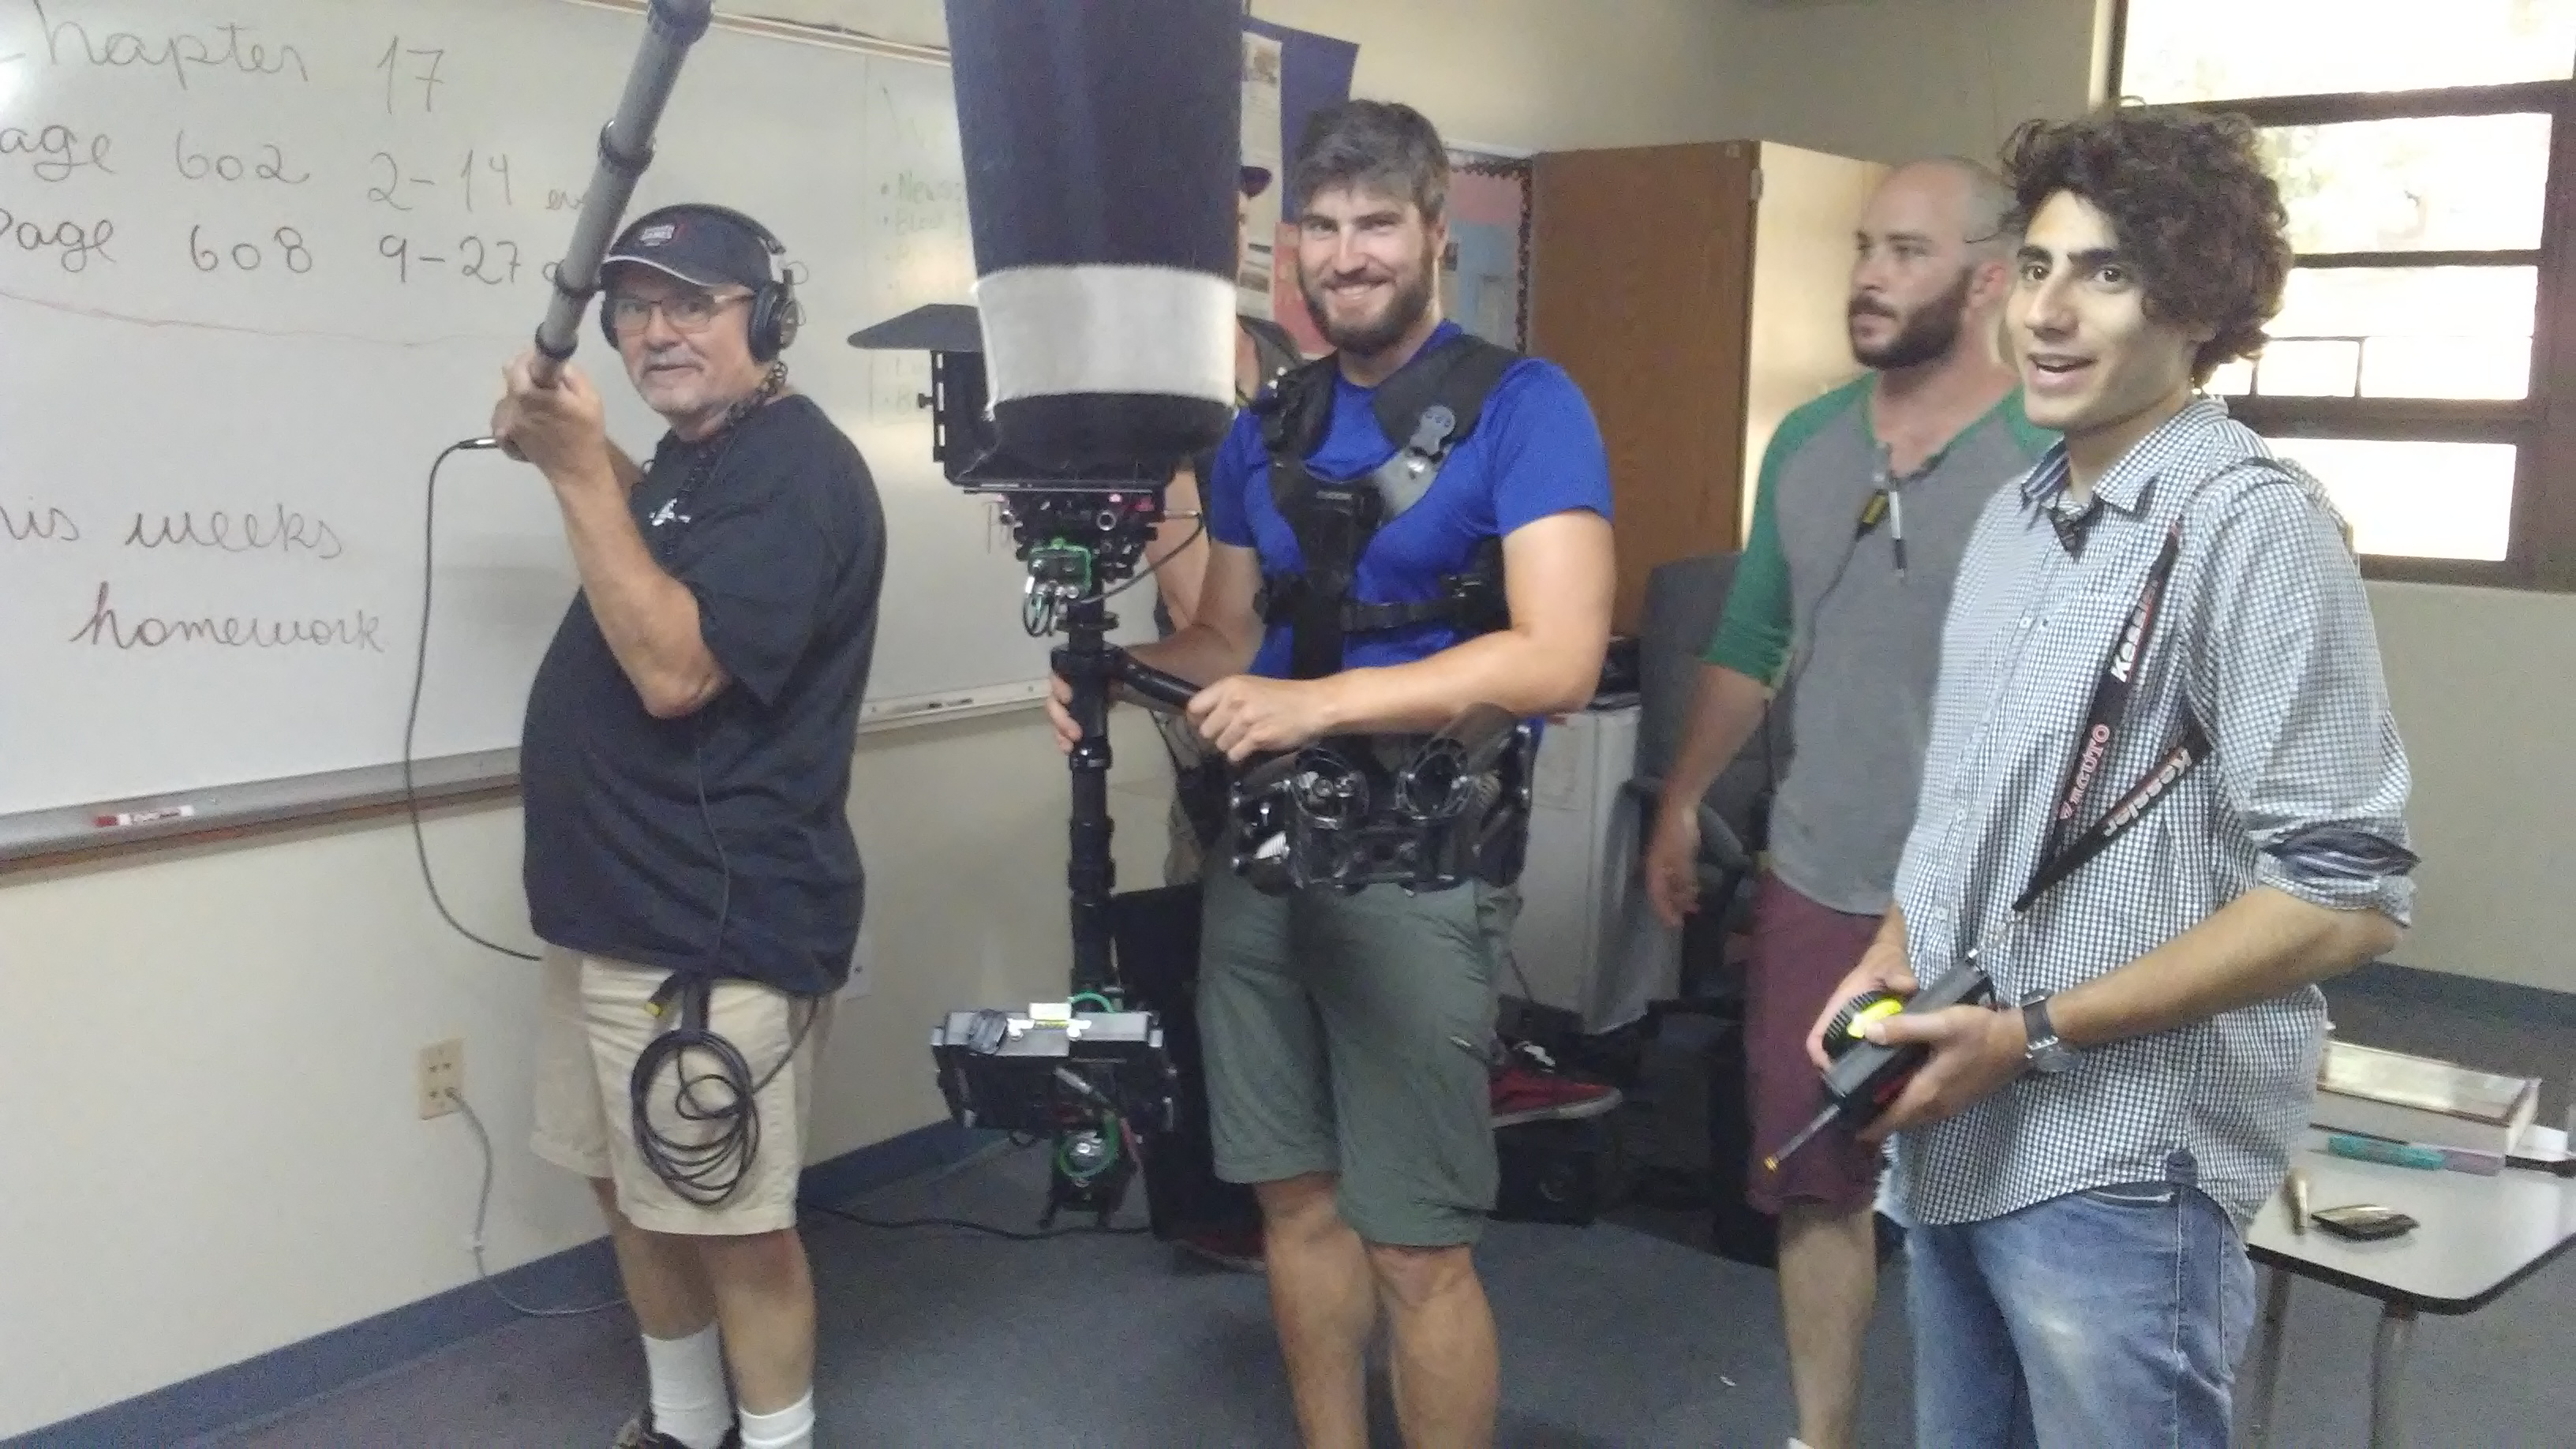 Jim Mello and Steadicam Op